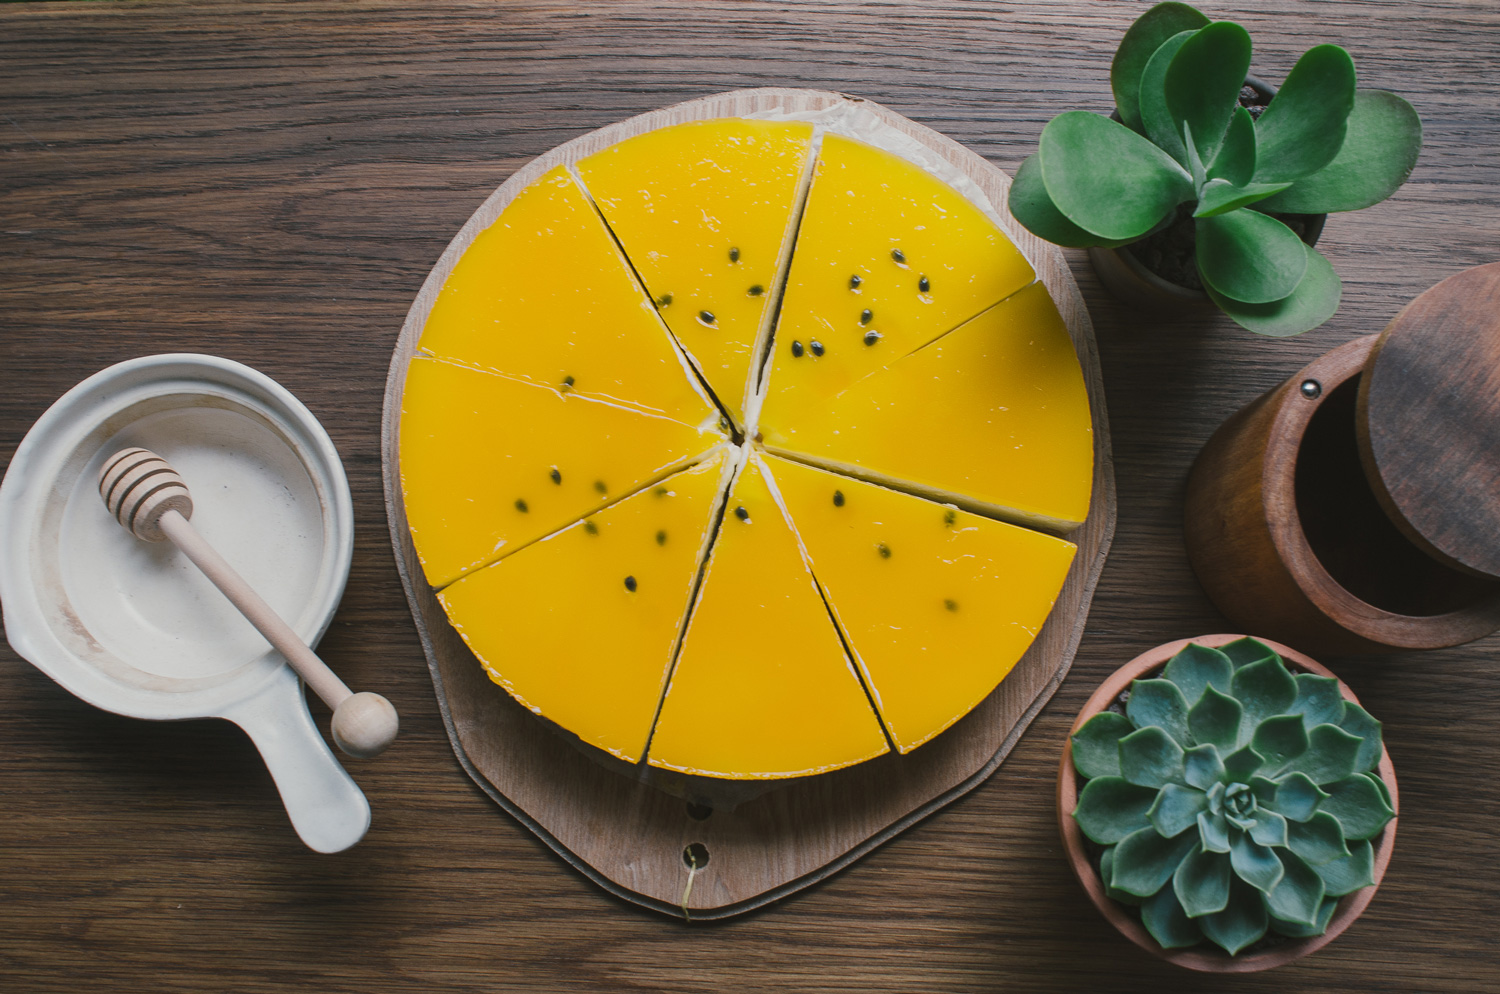 Passion Fruit Cheesecake   16cm: 470.000 VND   18cm: 500.000 VND